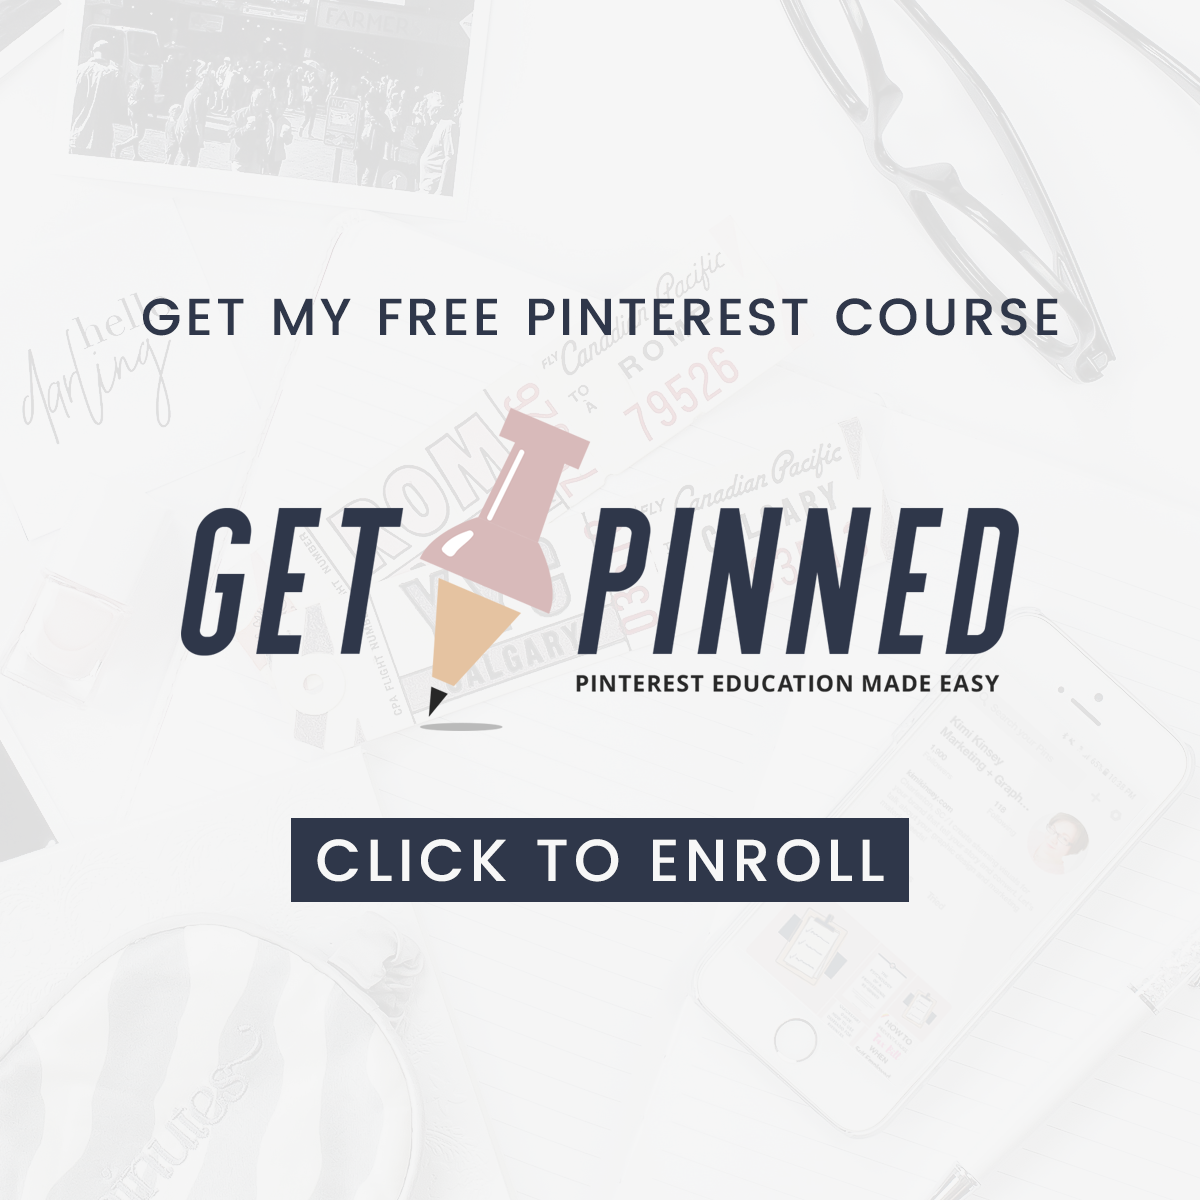 Enroll in Get Pinned Academy Free Pinterest Course